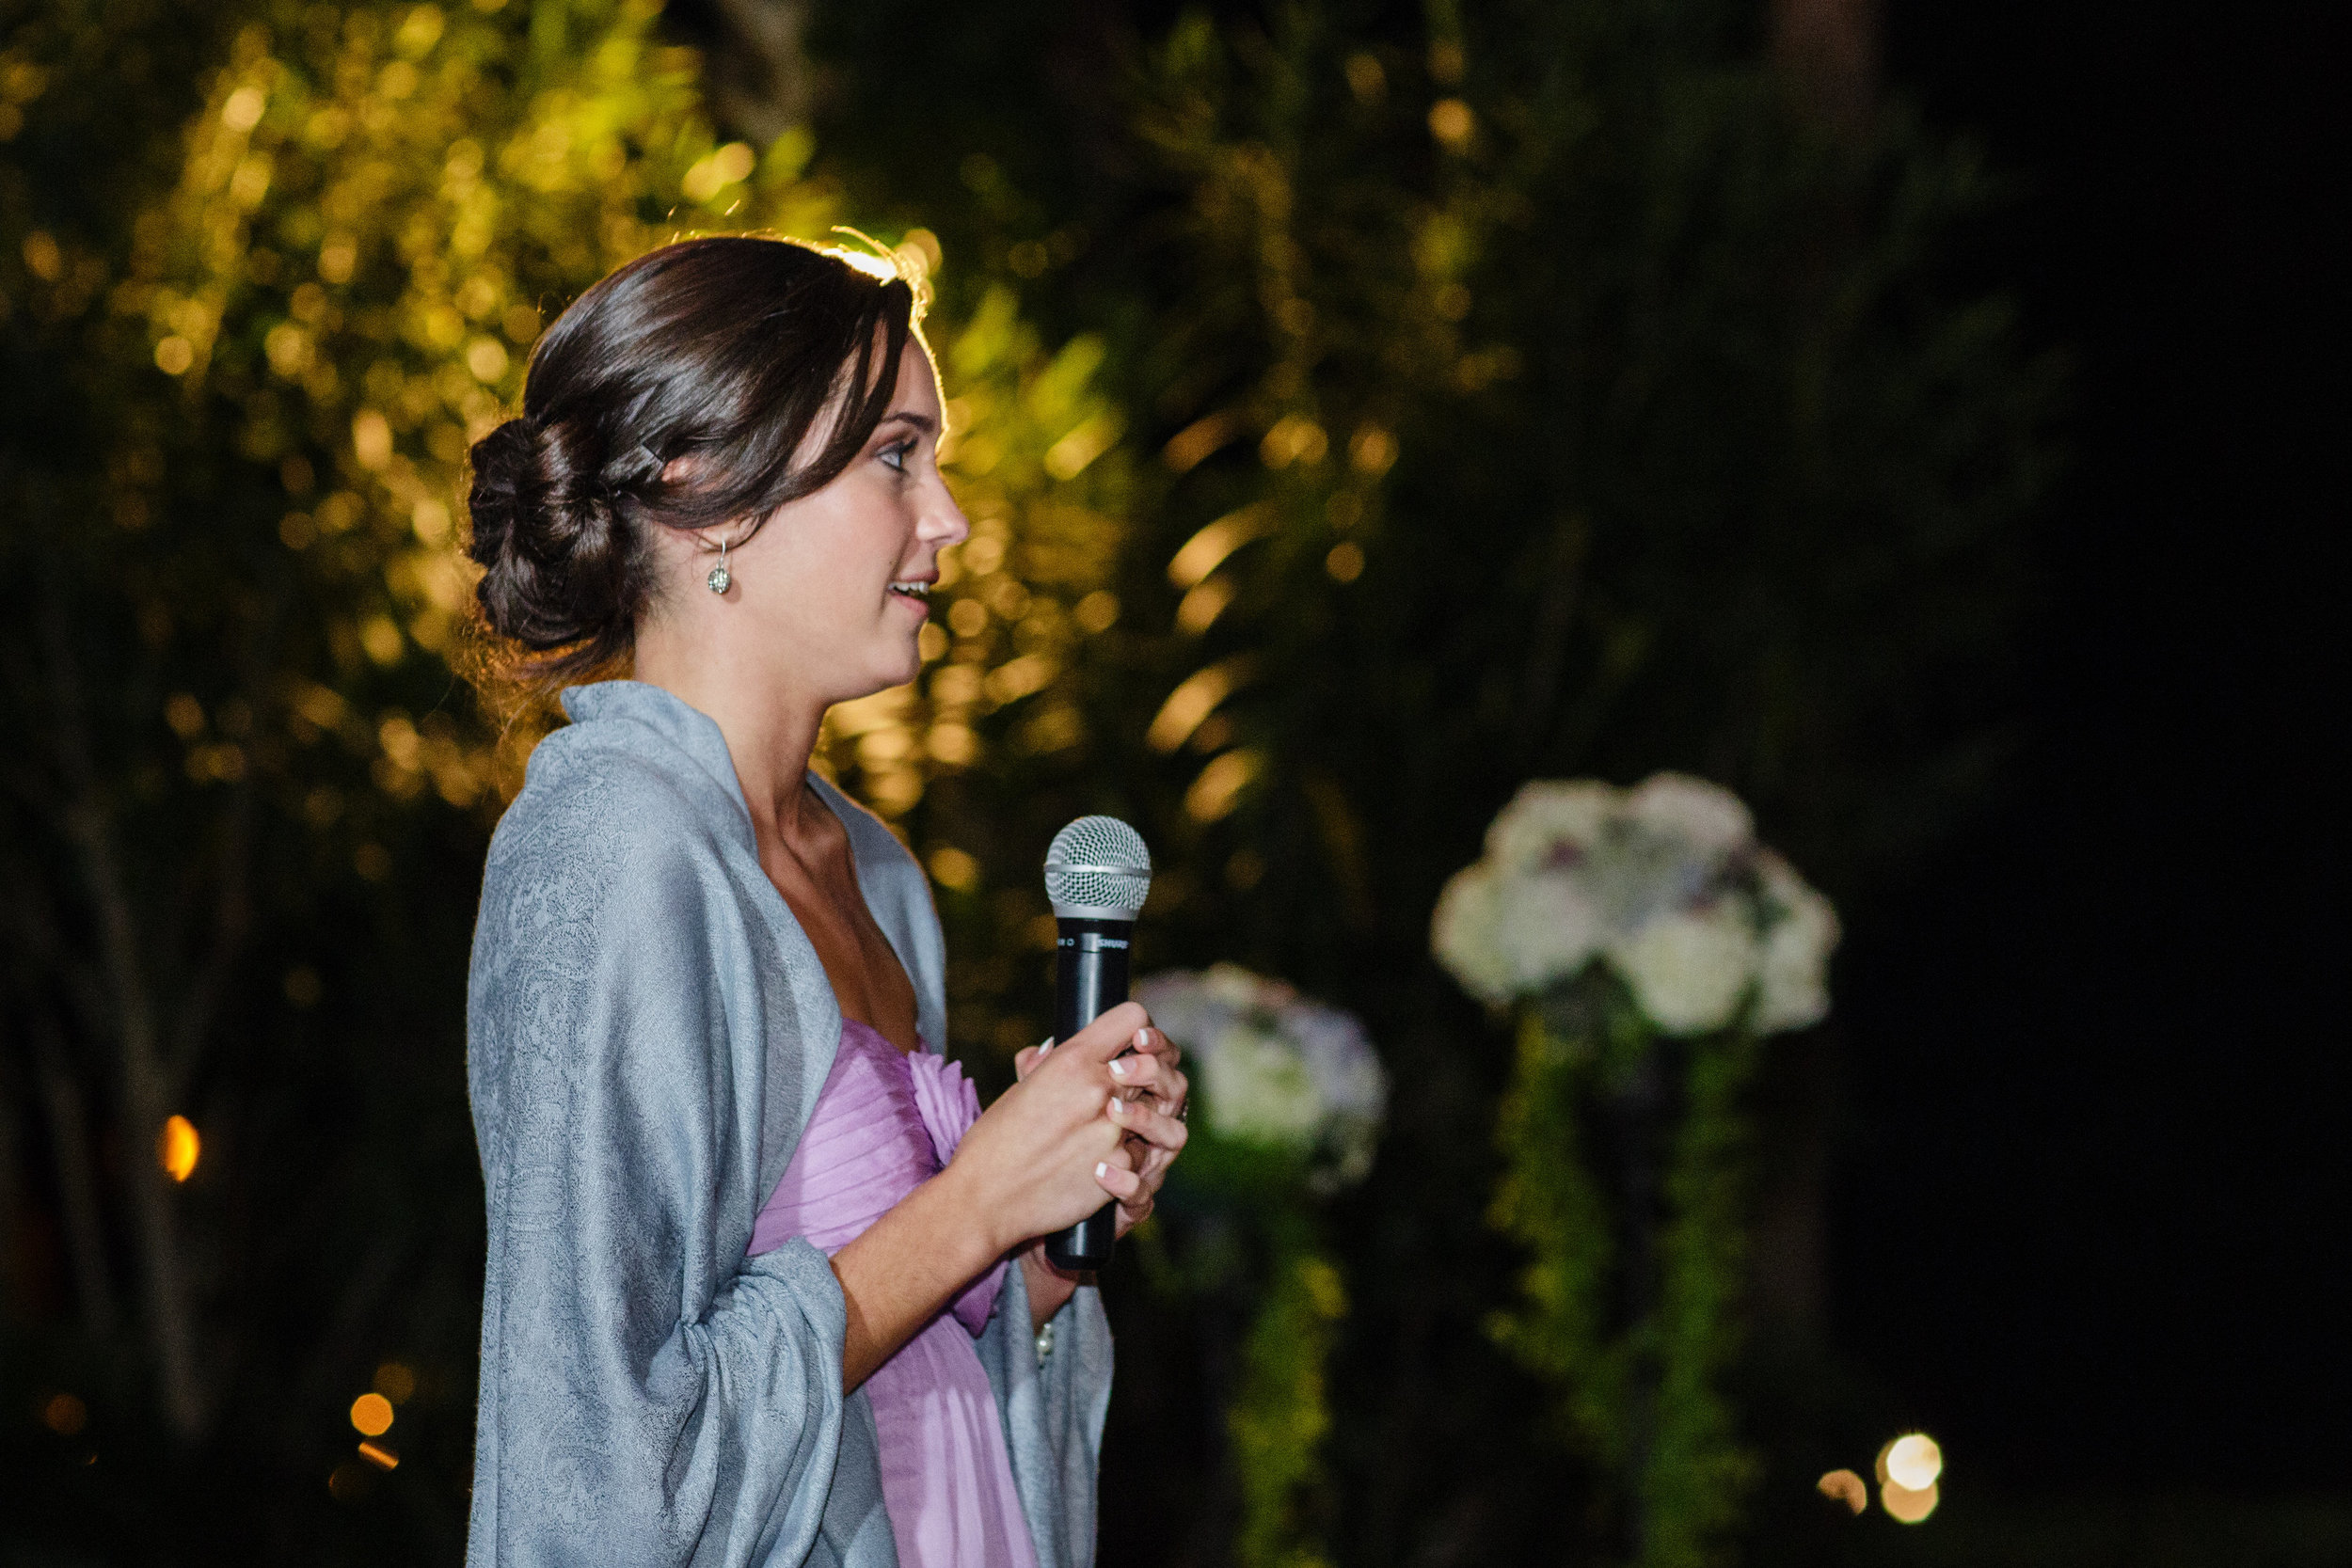 This is my dear sister, Lucy, looking precious in her pashmina as she gave her maid of honor speech at the reception.